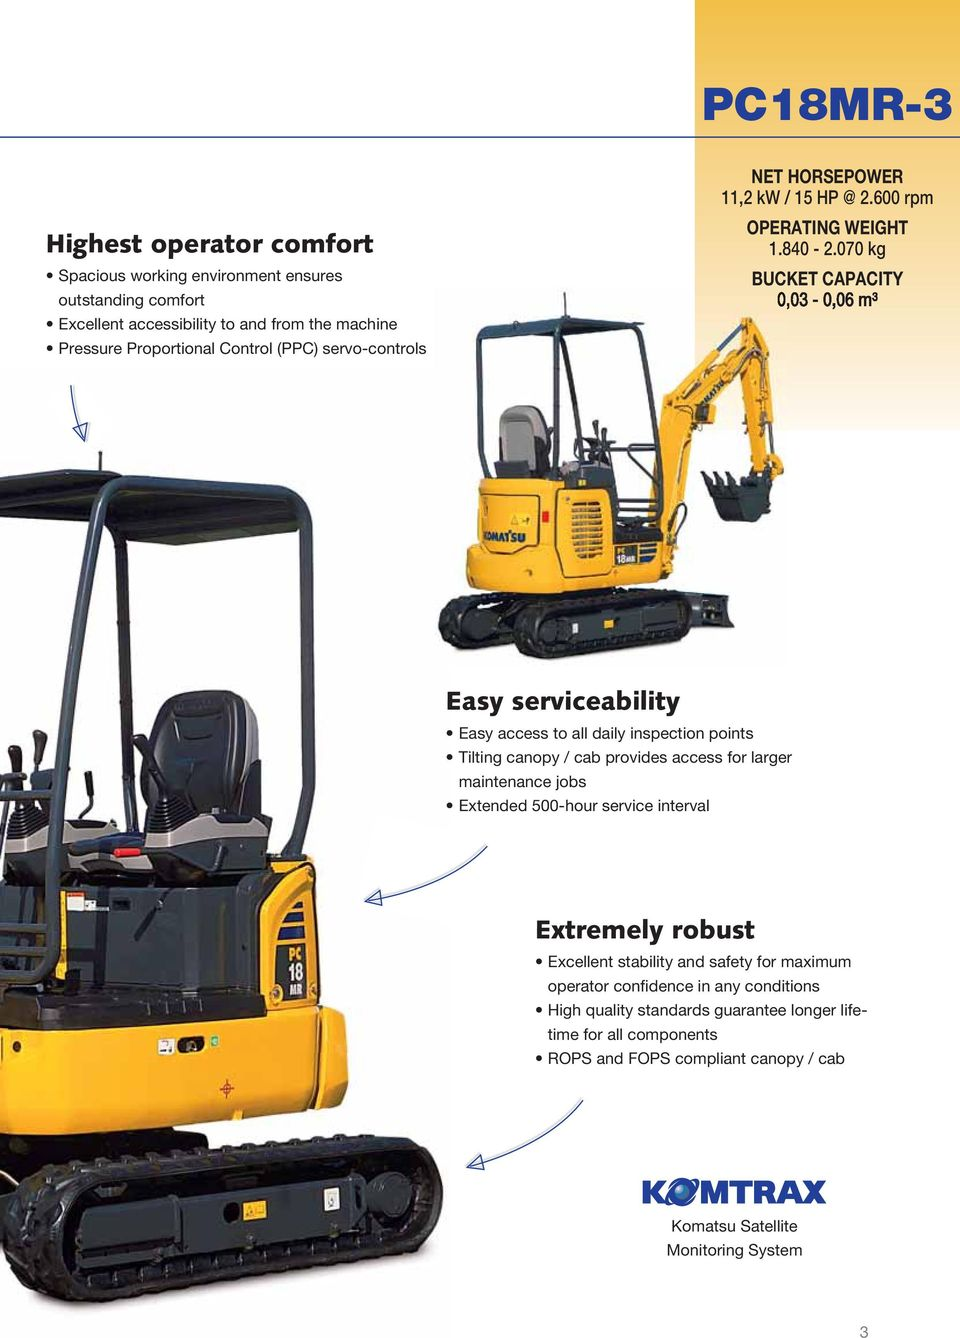 070 kg BUCKET CAPACITY Easy serviceability Easy access to all daily inspection points Tilting canopy / cab provides access for larger maintenance jobs Extended 500-hour